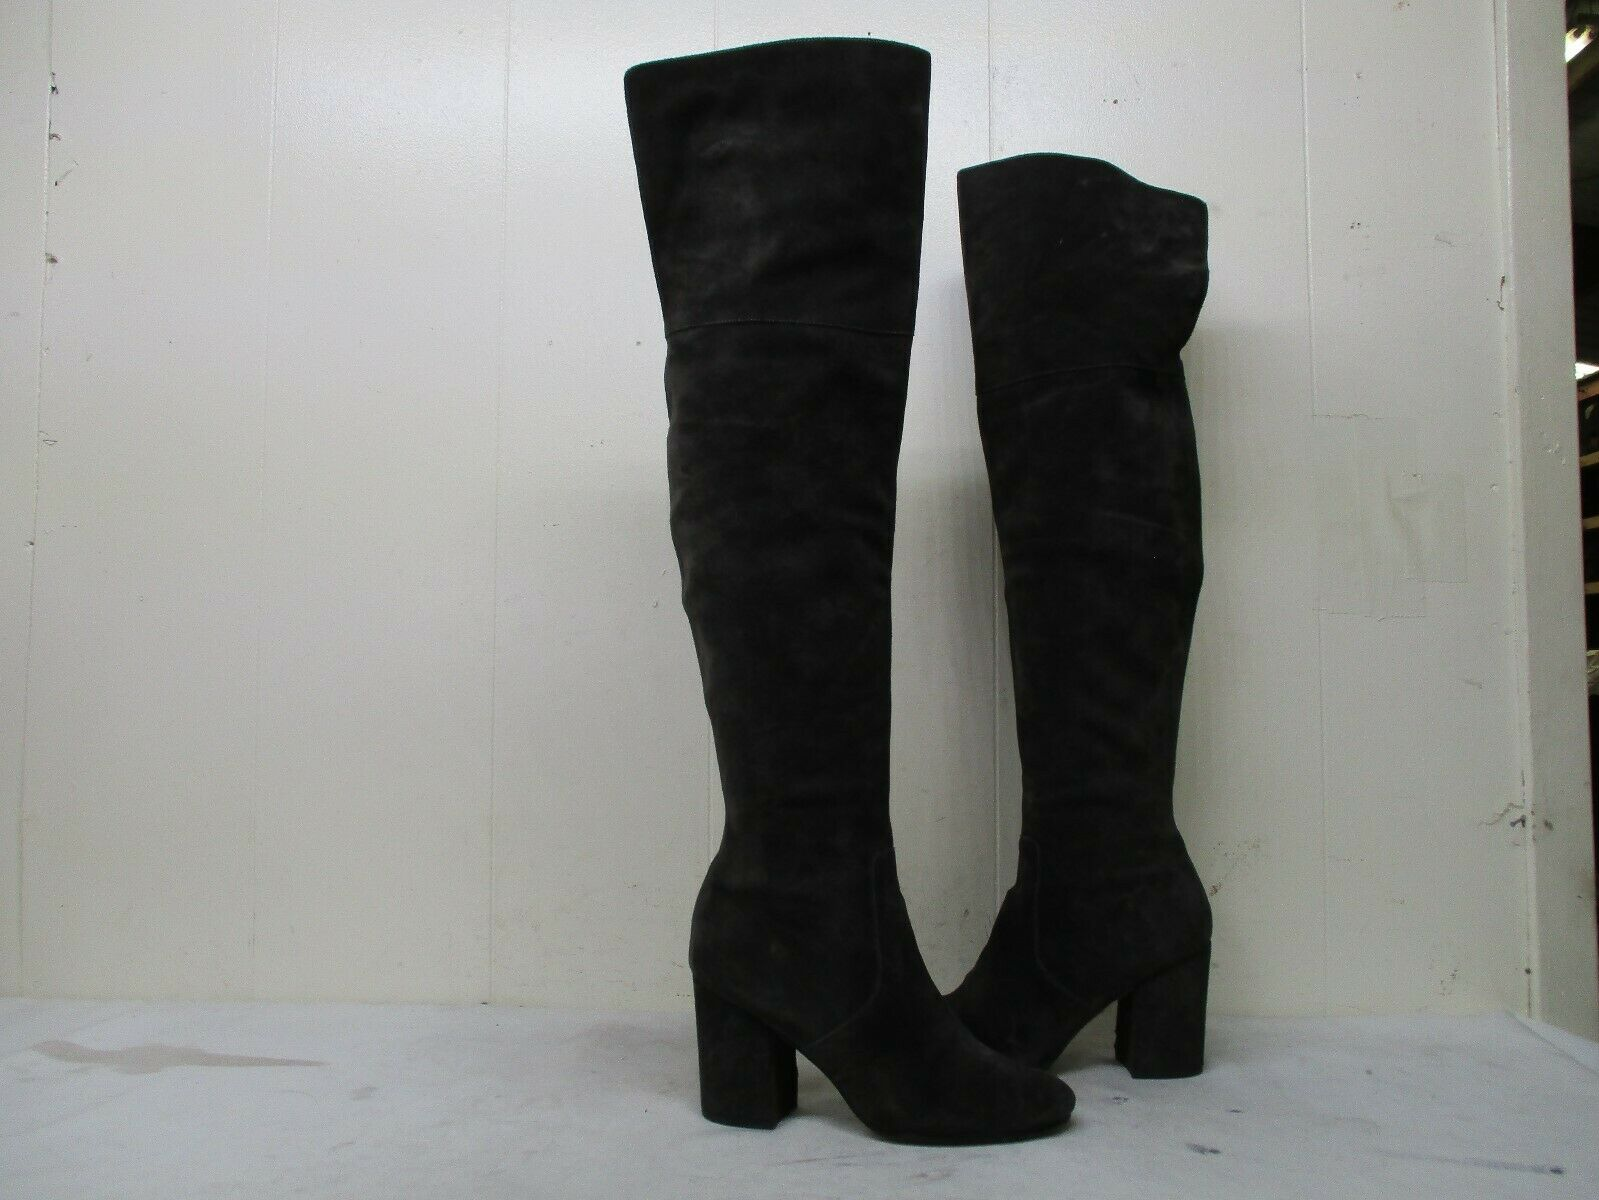 VIA SPIGA Brown Suede Leather Over The Knee High Heel Boots Womens Size 7.5 M